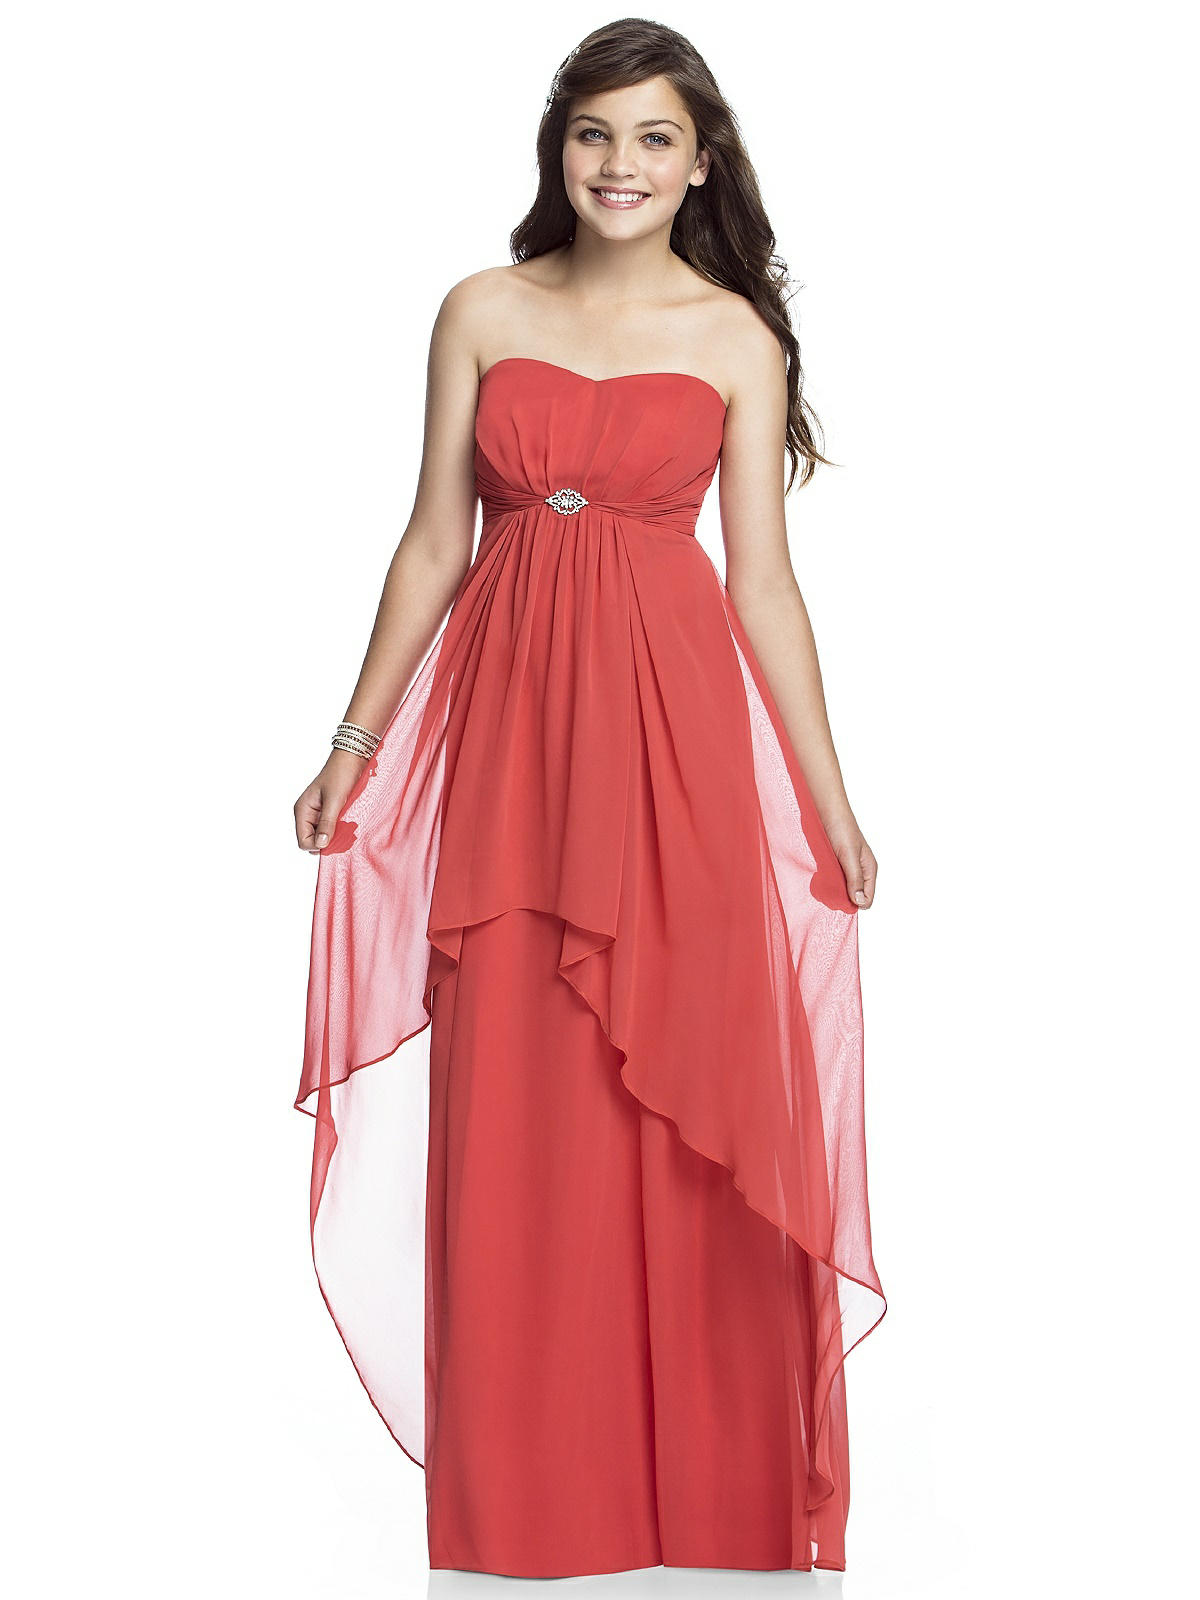 10 bridesmaids dresses for hot weather days red junior bridesmaid dress in chiffon ombrellifo Image collections